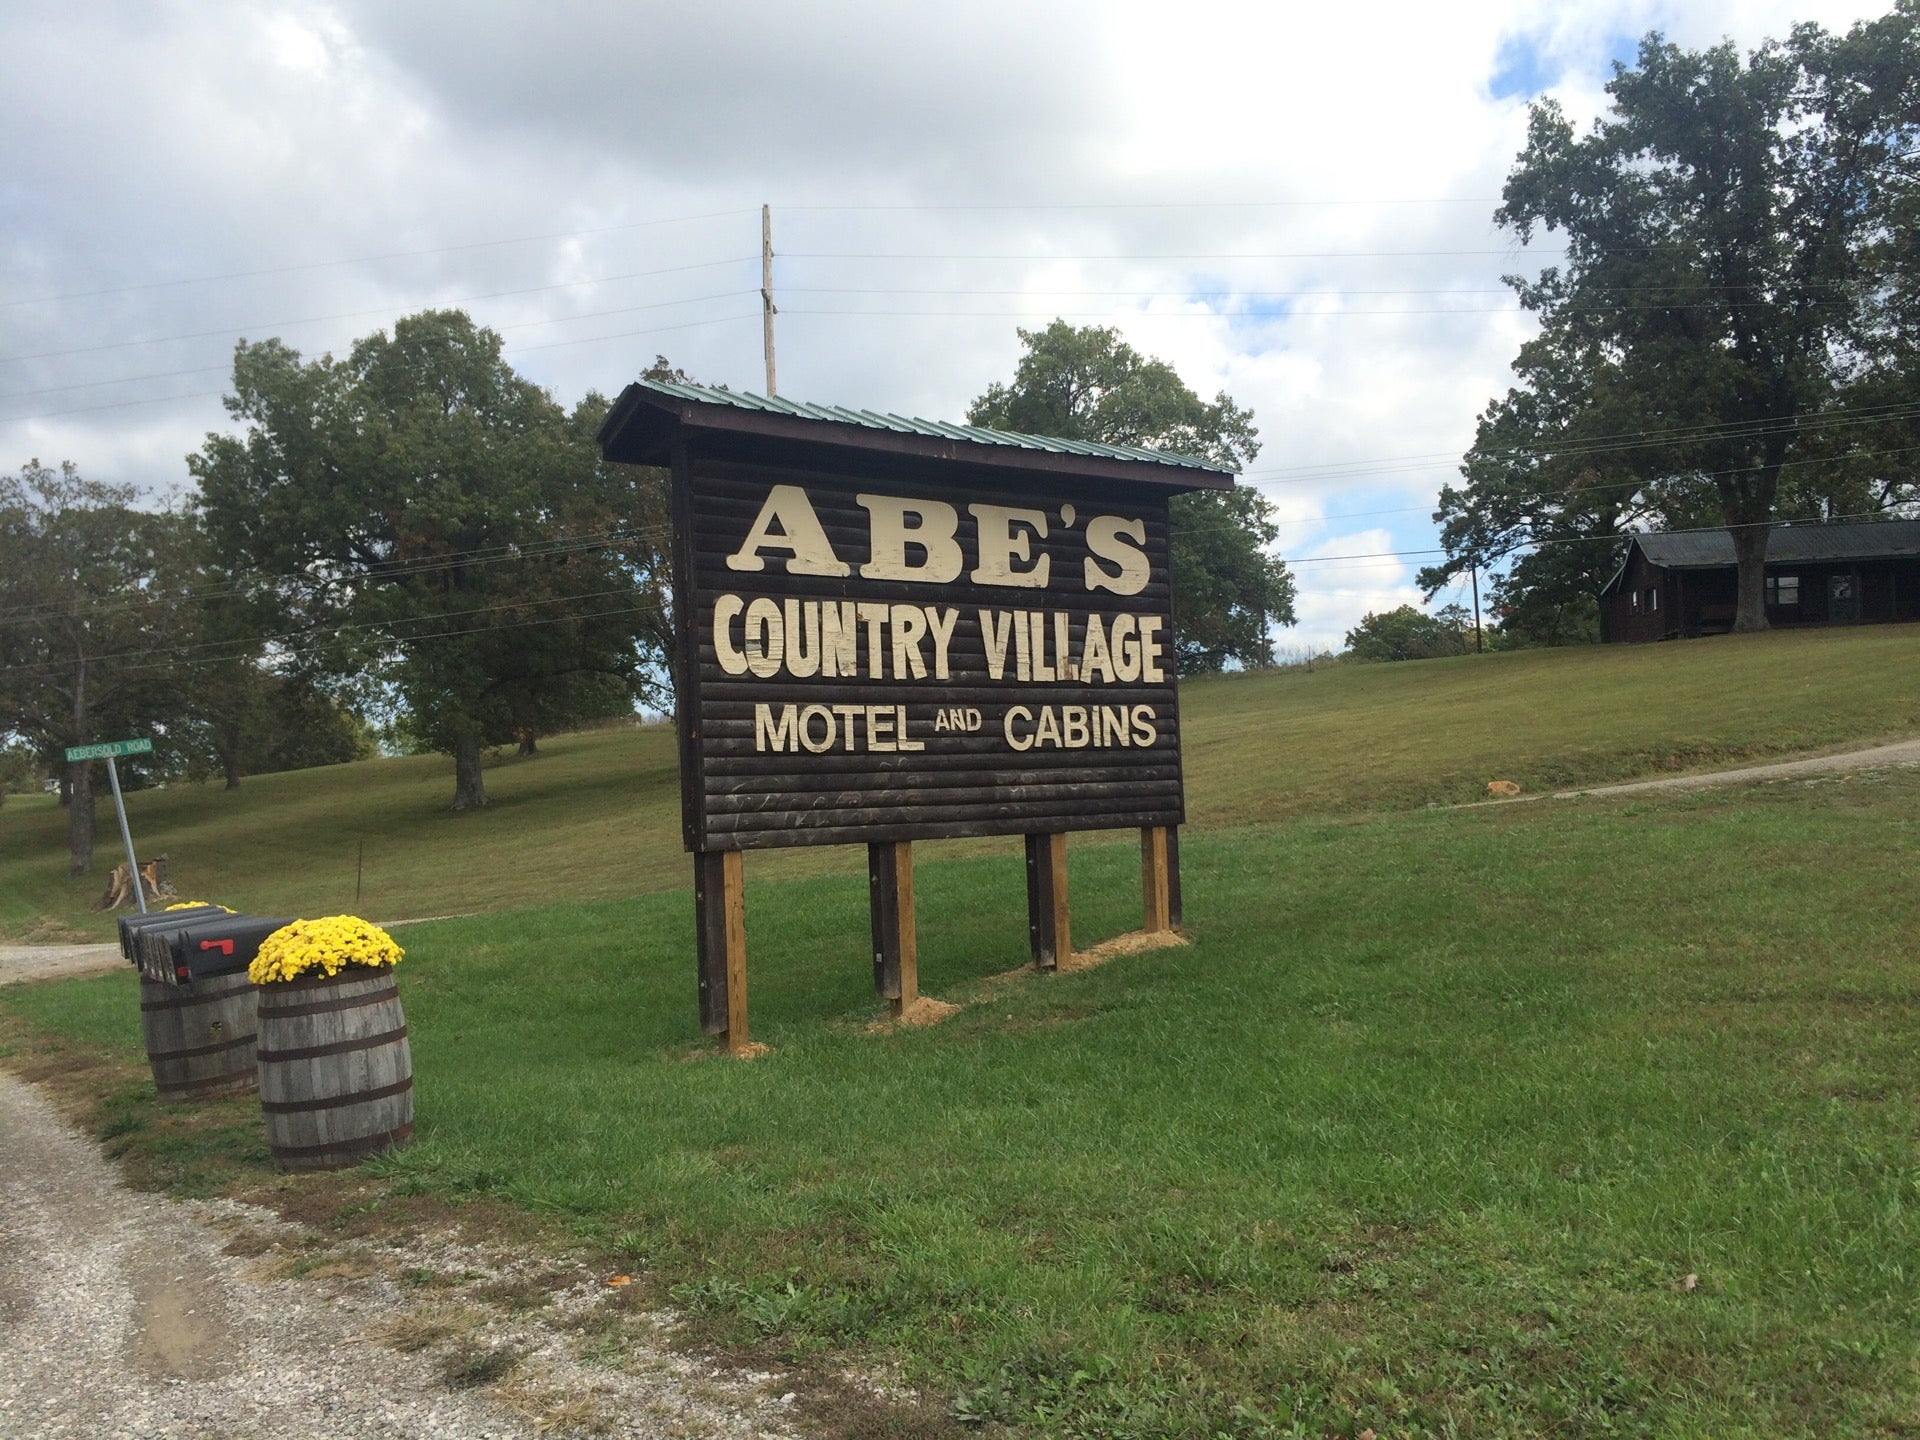 Abe's Country Village Motel & Cabins,